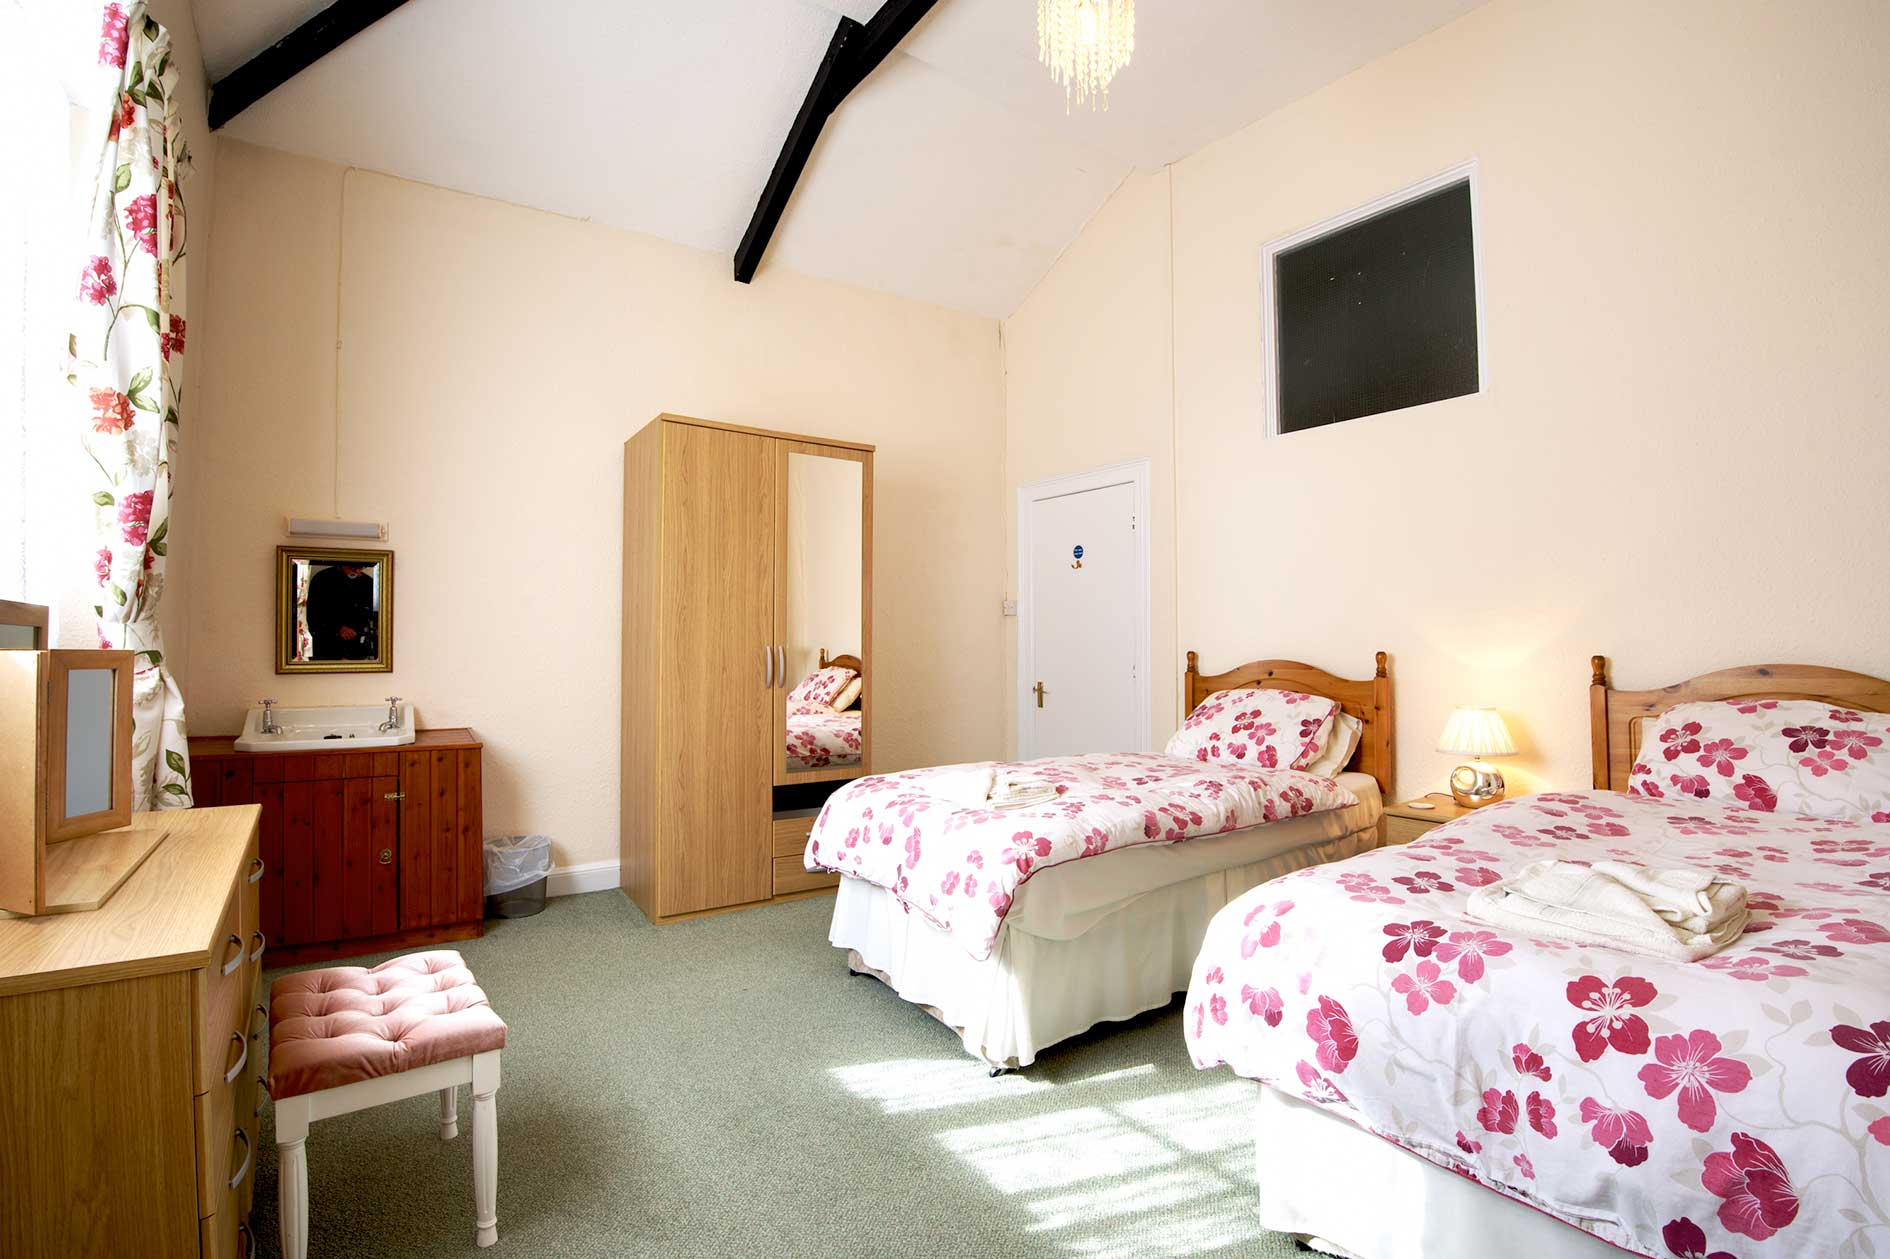 Light Bedroom With Two Single Beds With Red Flower Covers And Wooden Furniture